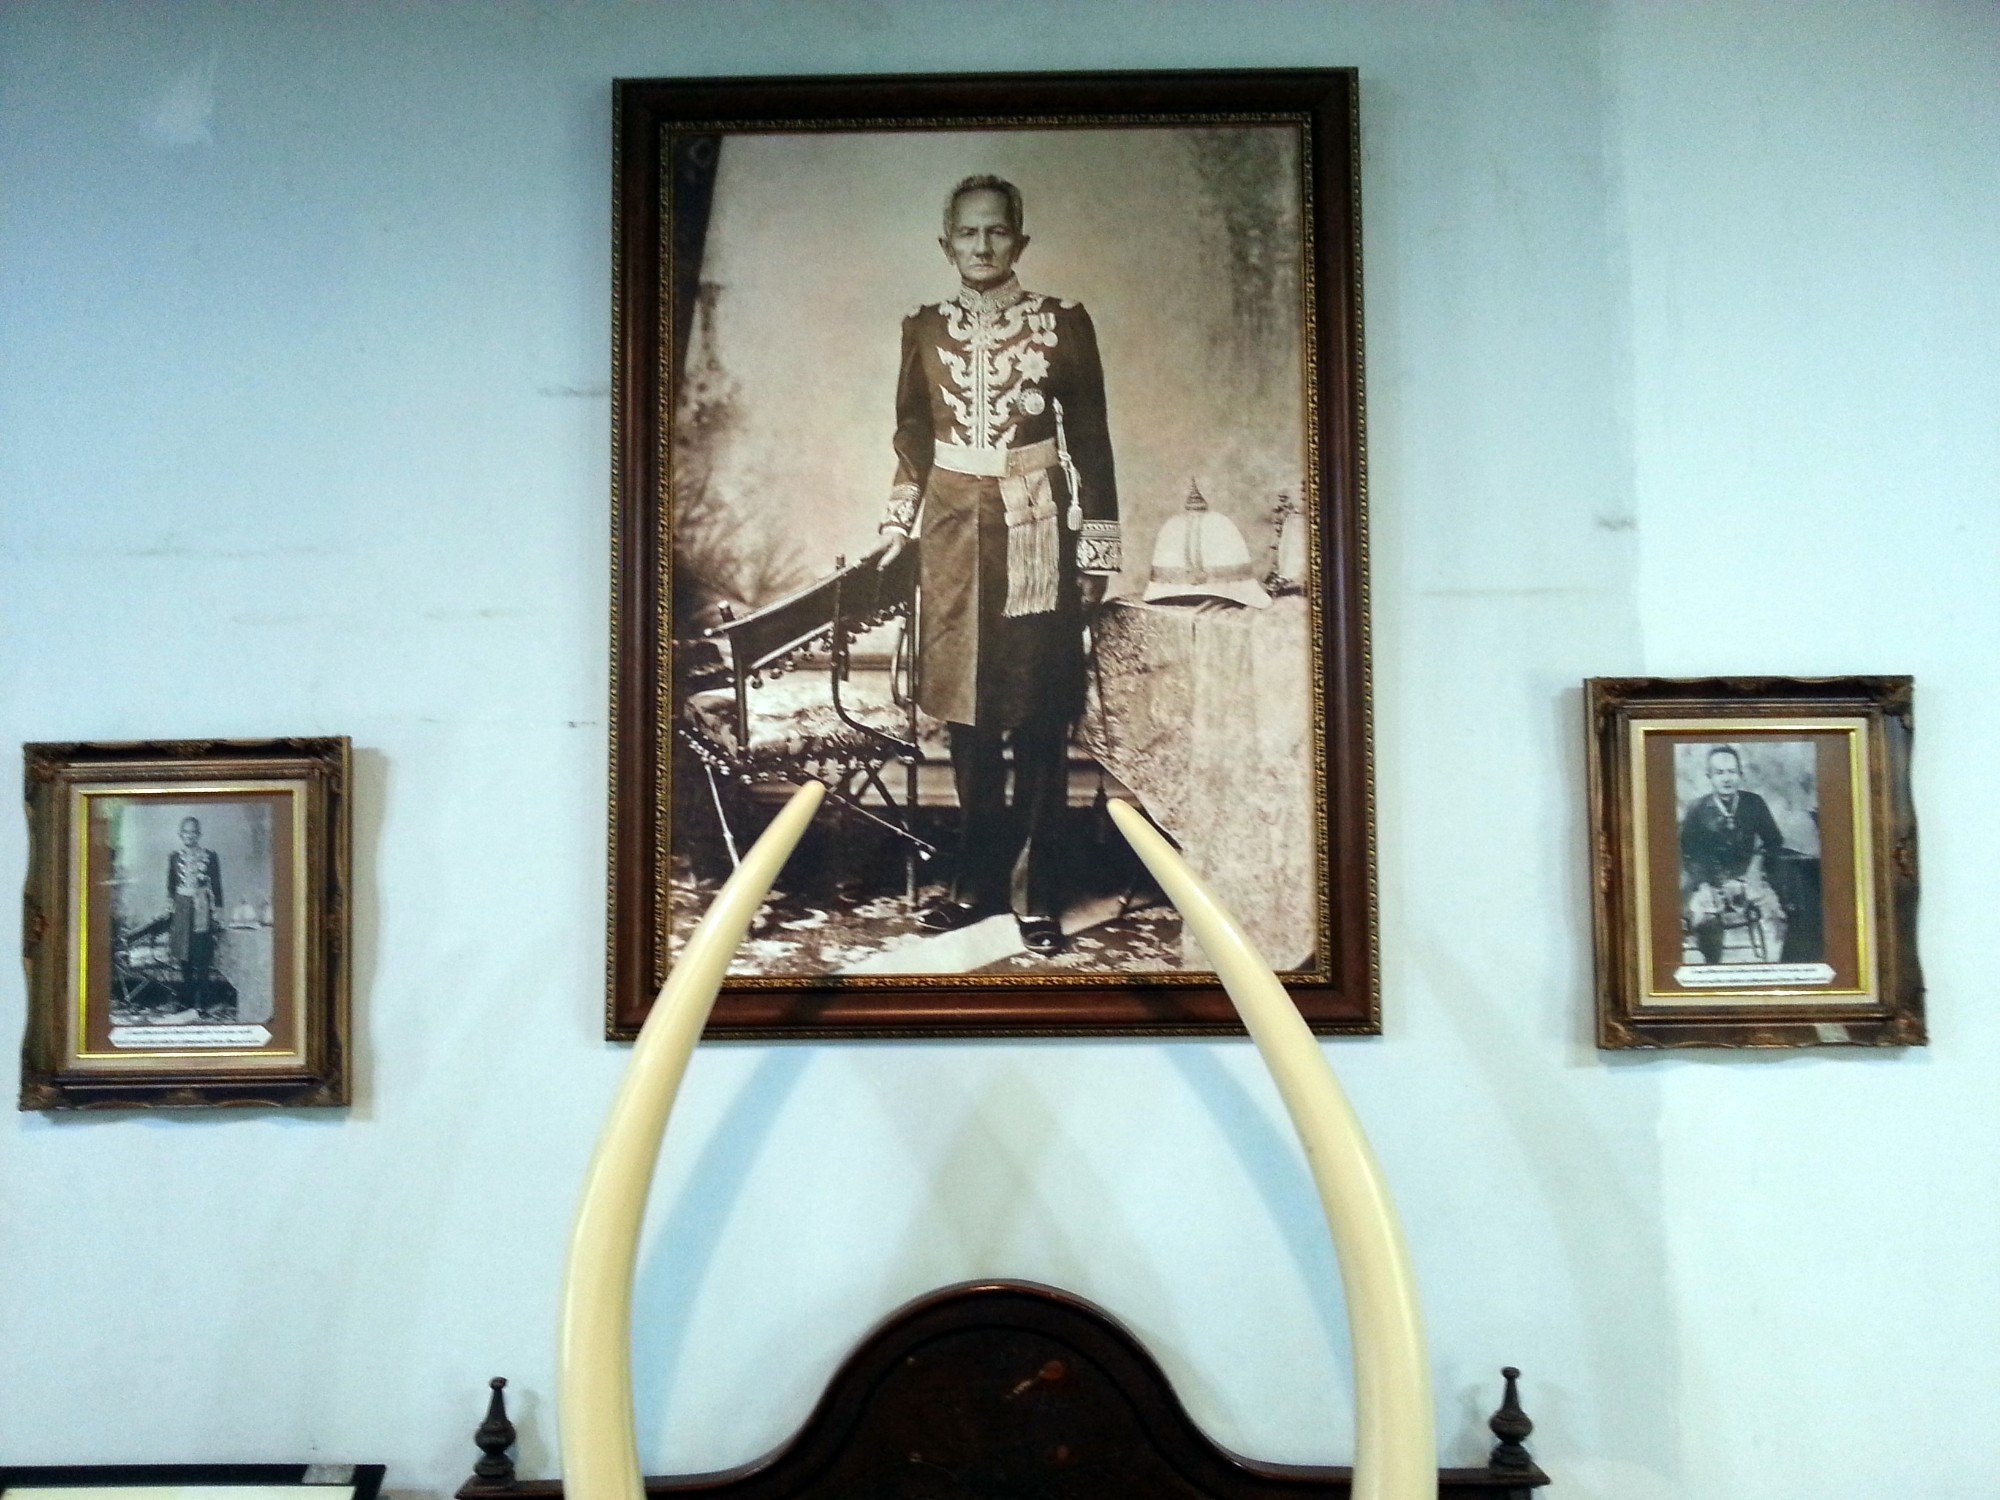 Portrait of the Chao Luang at Khum Chao Luang Museum